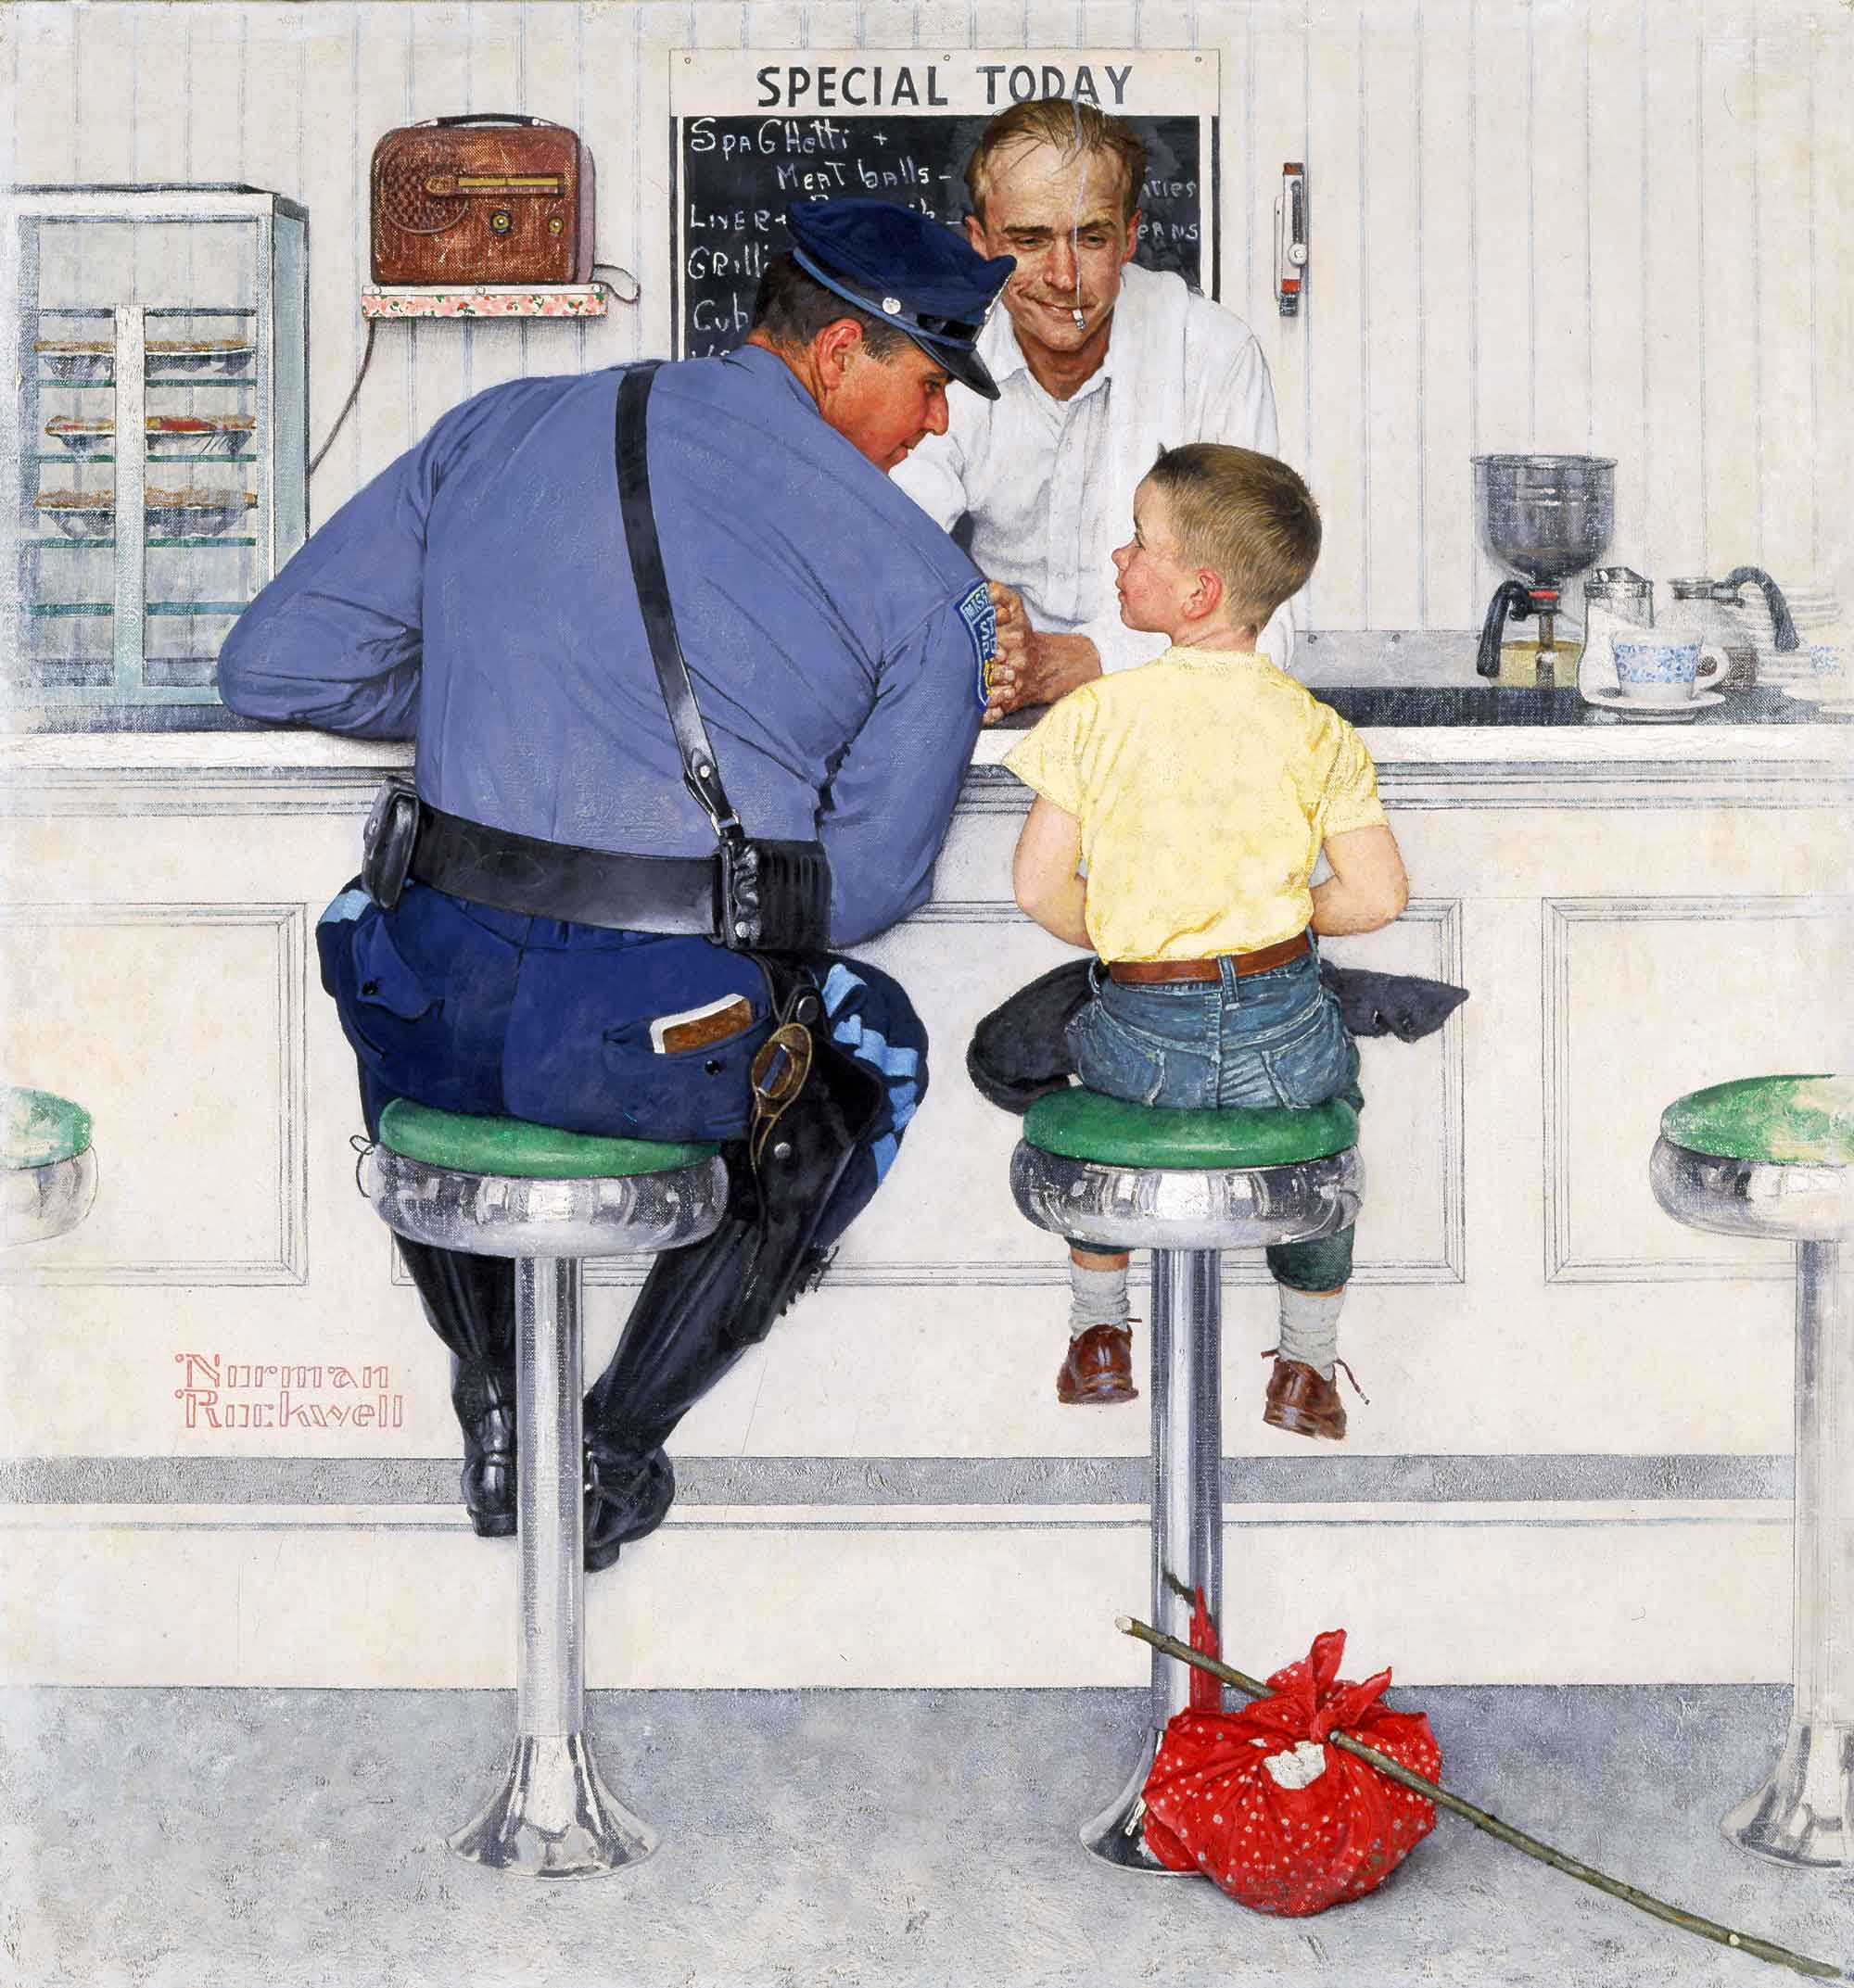 02 -The Runaway - Norman Rockwell